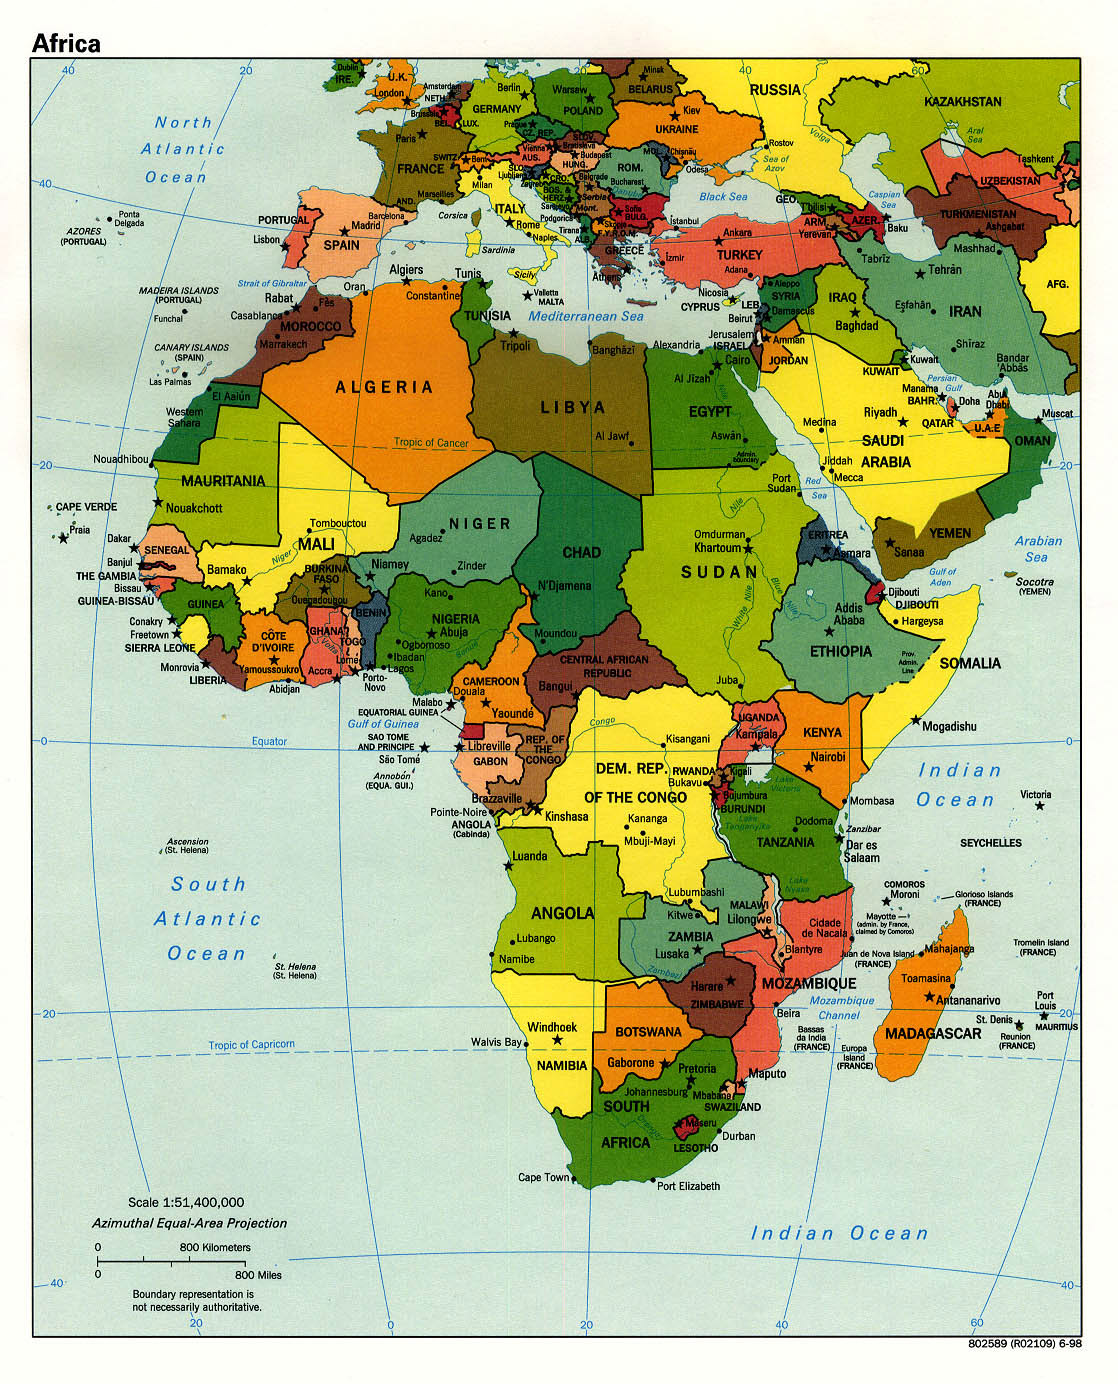 Map Of Africa Detailed.Detailed Political Map Of Africa Africa Detailed Political